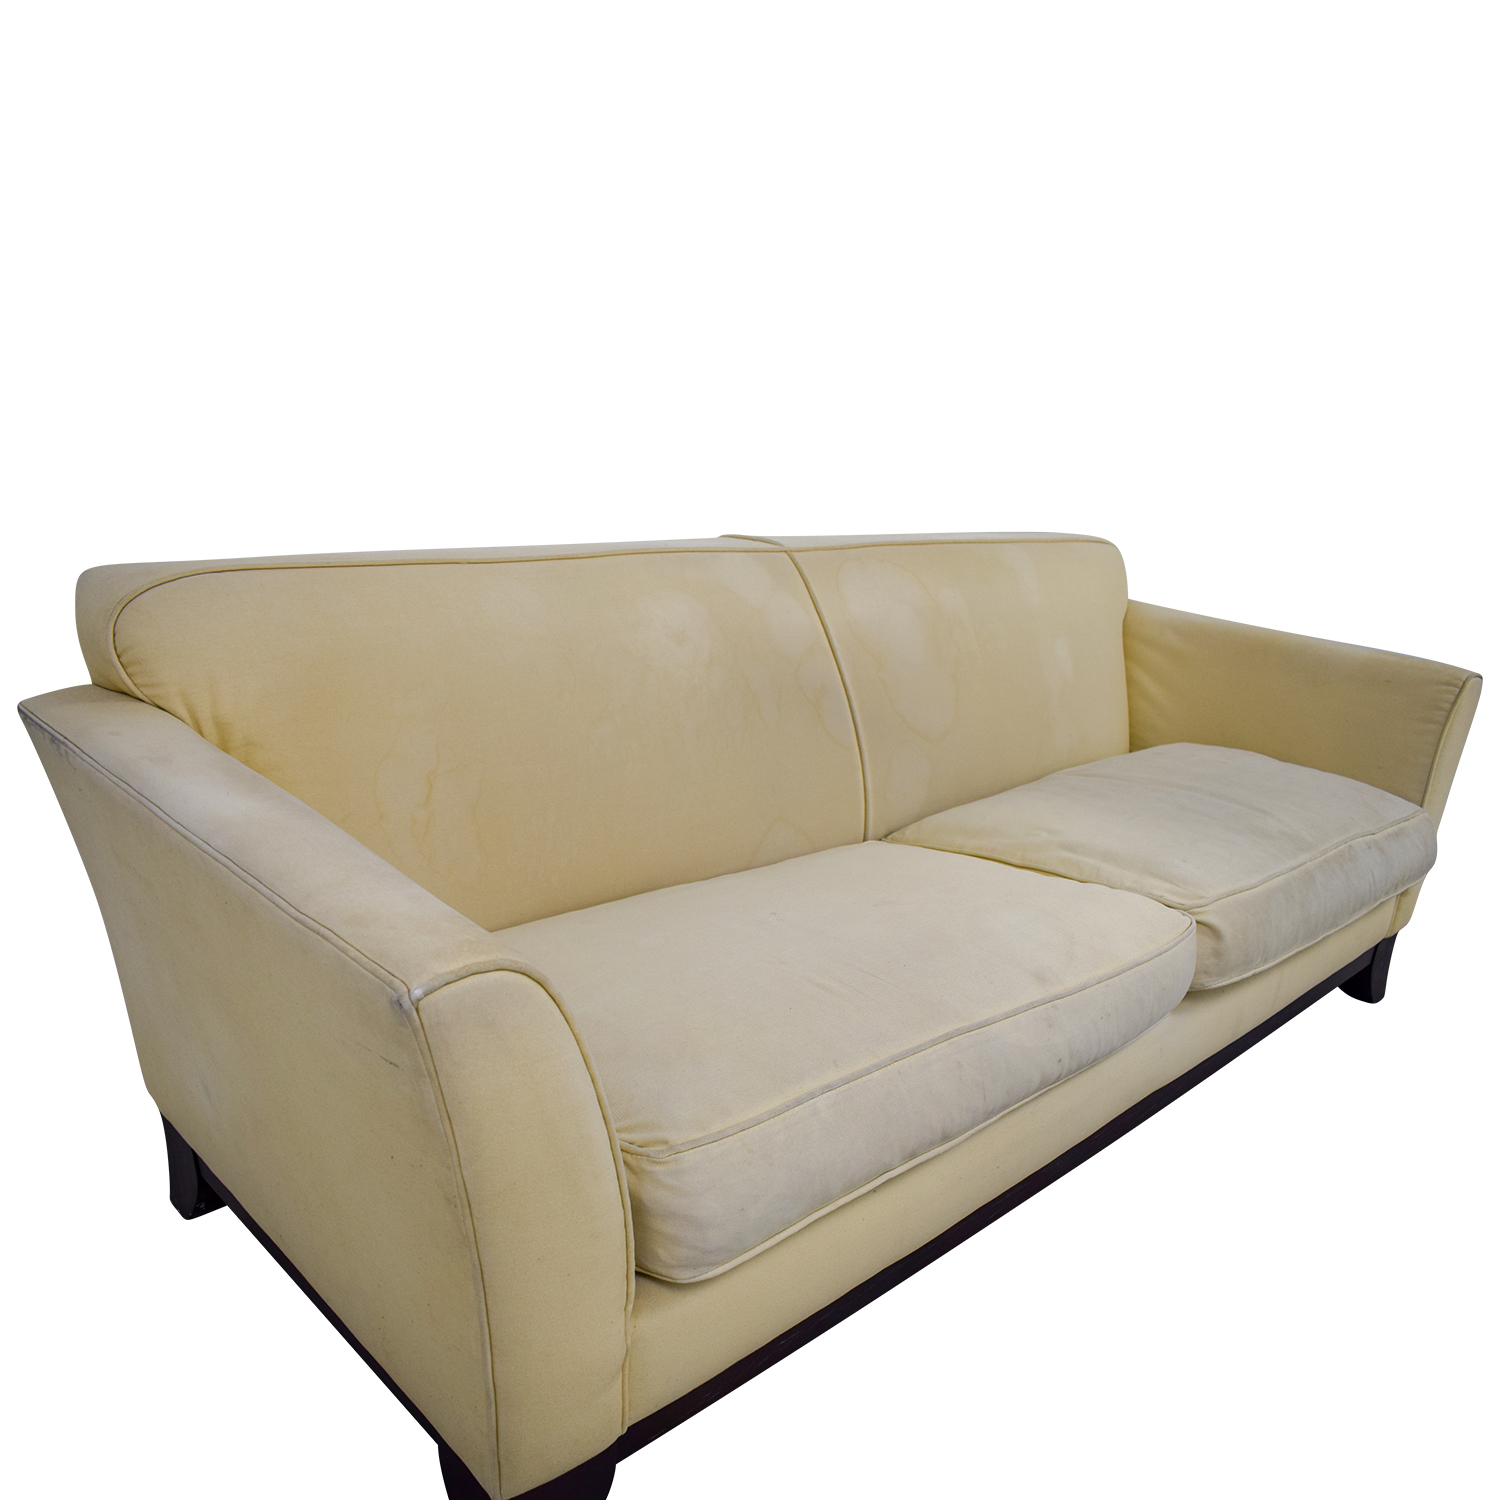 pottery barn sofa for sale by owner extra large bed 90 off beige upholstered two